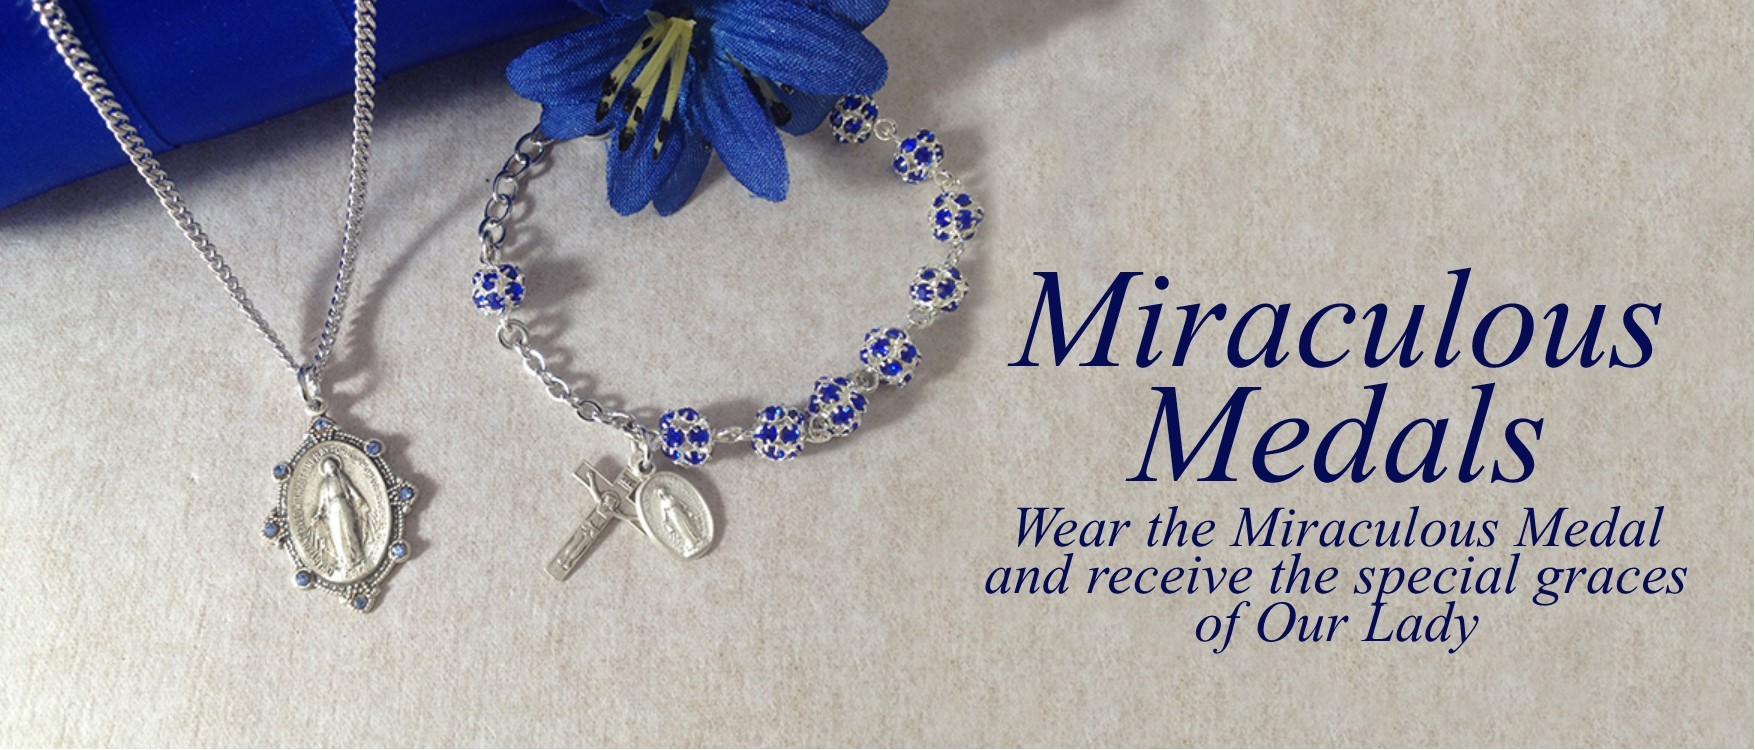 Home Page Slider - Miraculous Medals